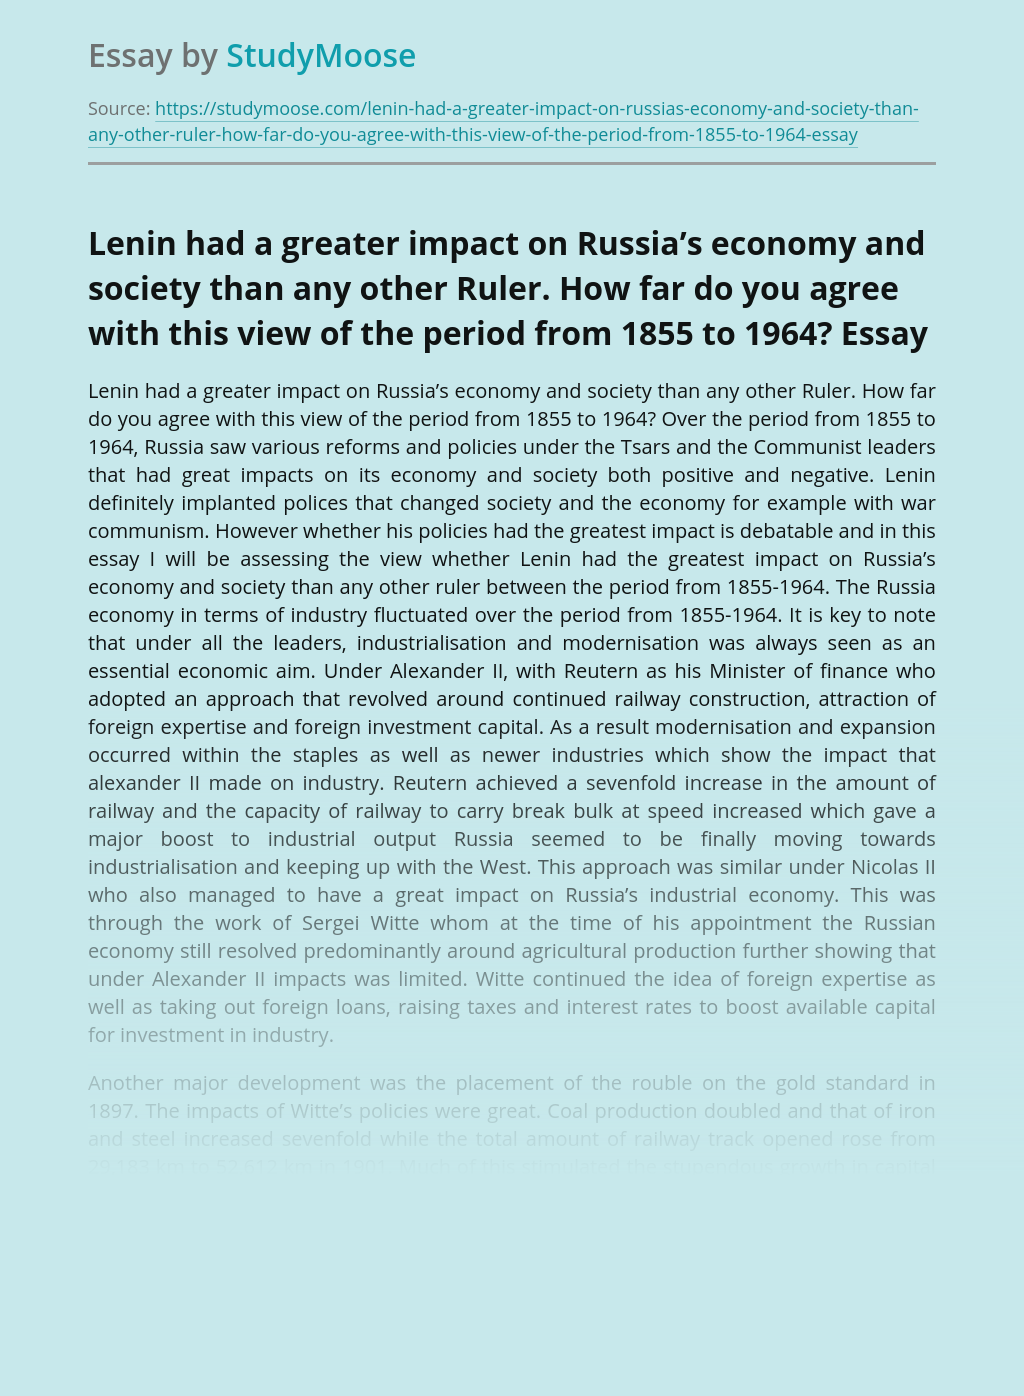 Lenin had a greater impact on Russia's economy and society than any other Ruler. How far do you agree with this view of the period from 1855 to 1964?